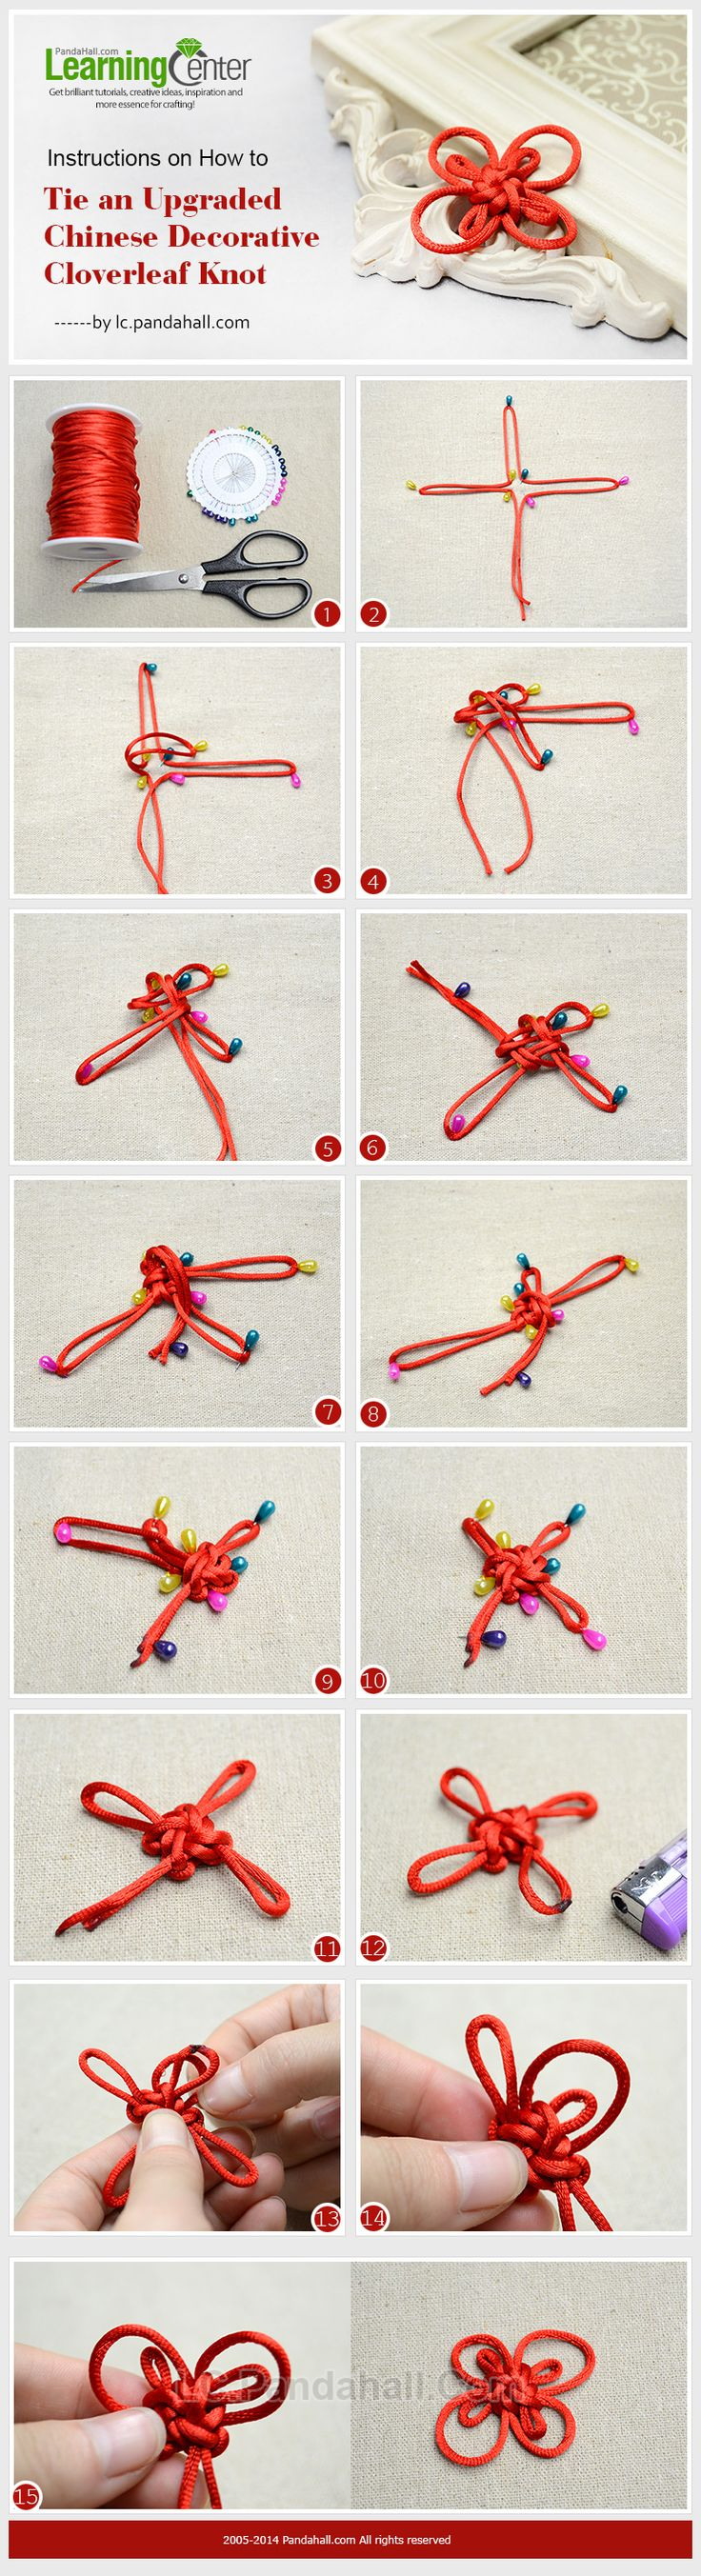 chinese knot tying tutorial